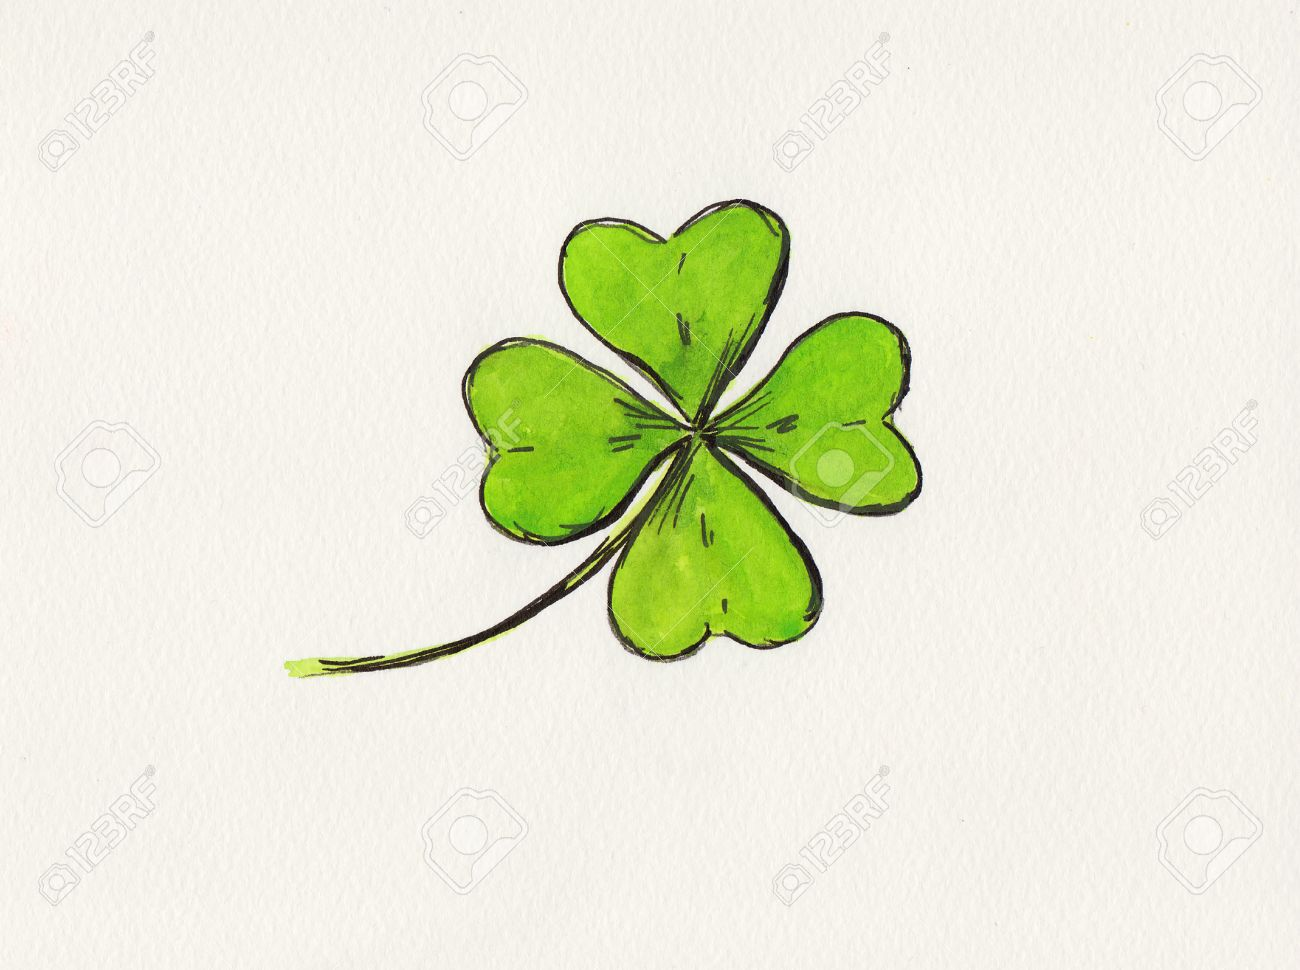 1300x970 Four Leaf Clover Drawing Stock Photo, Picture And Royalty Free